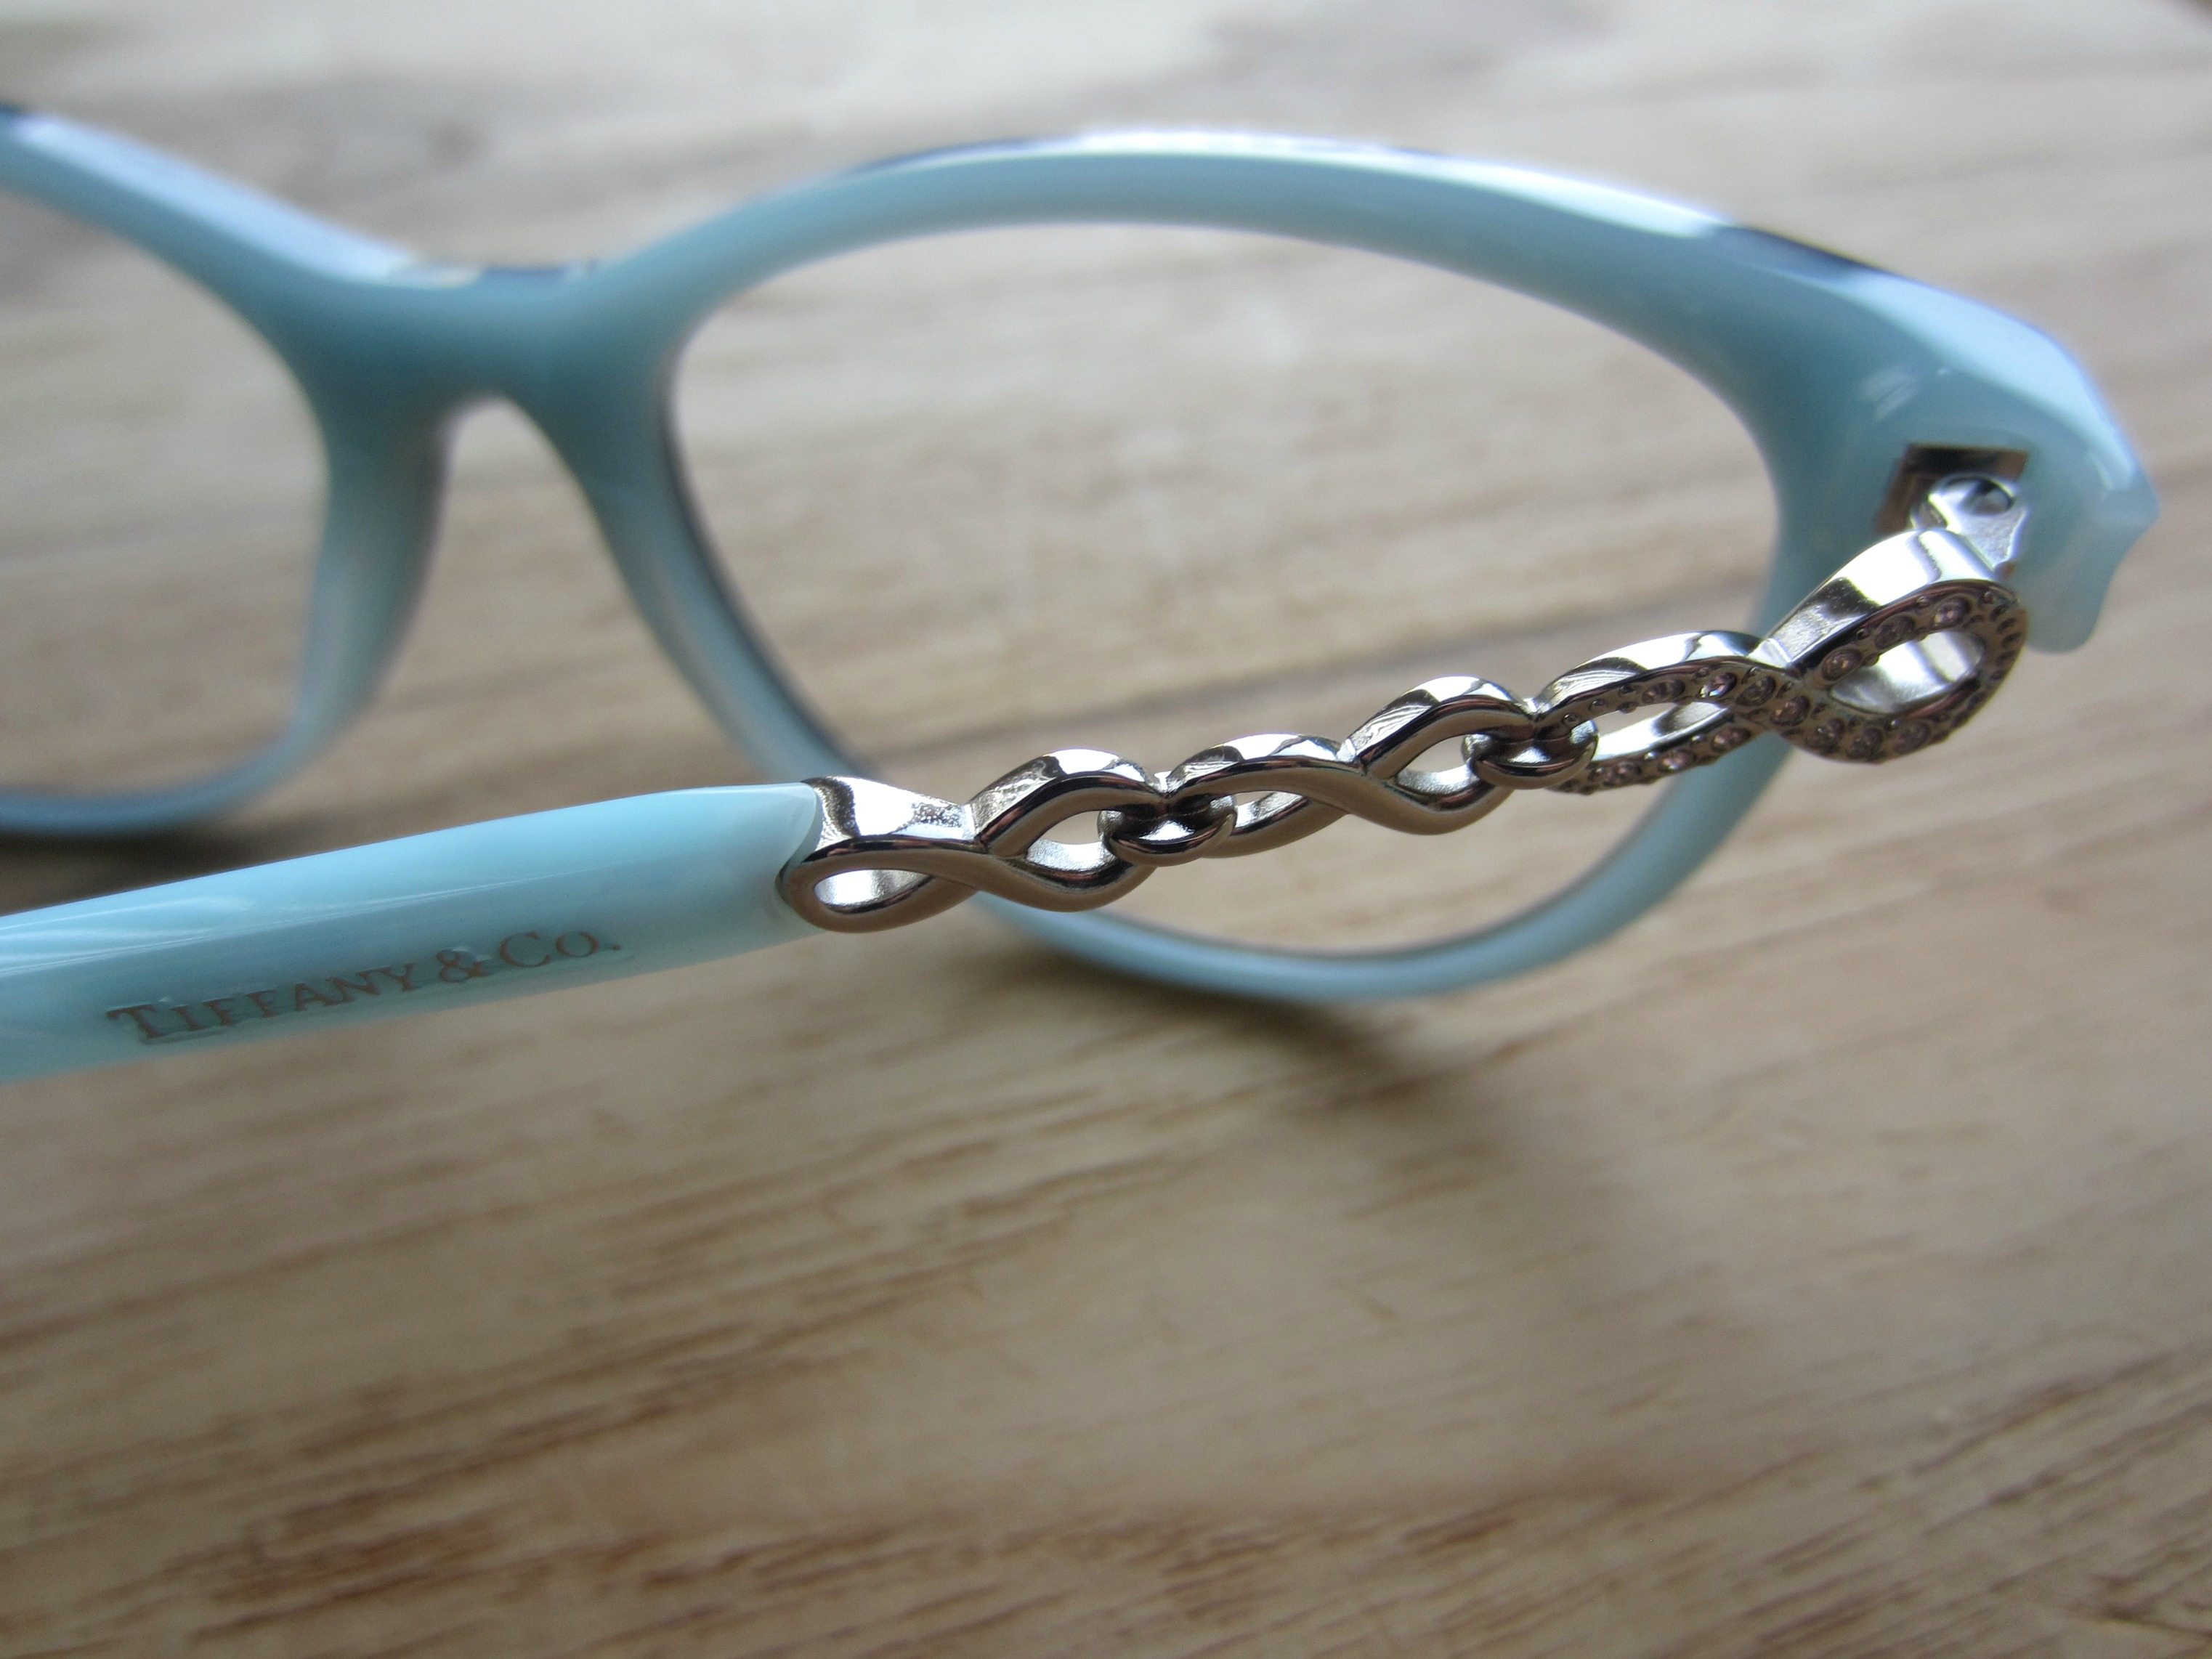 Tiffany & Co. glasses details